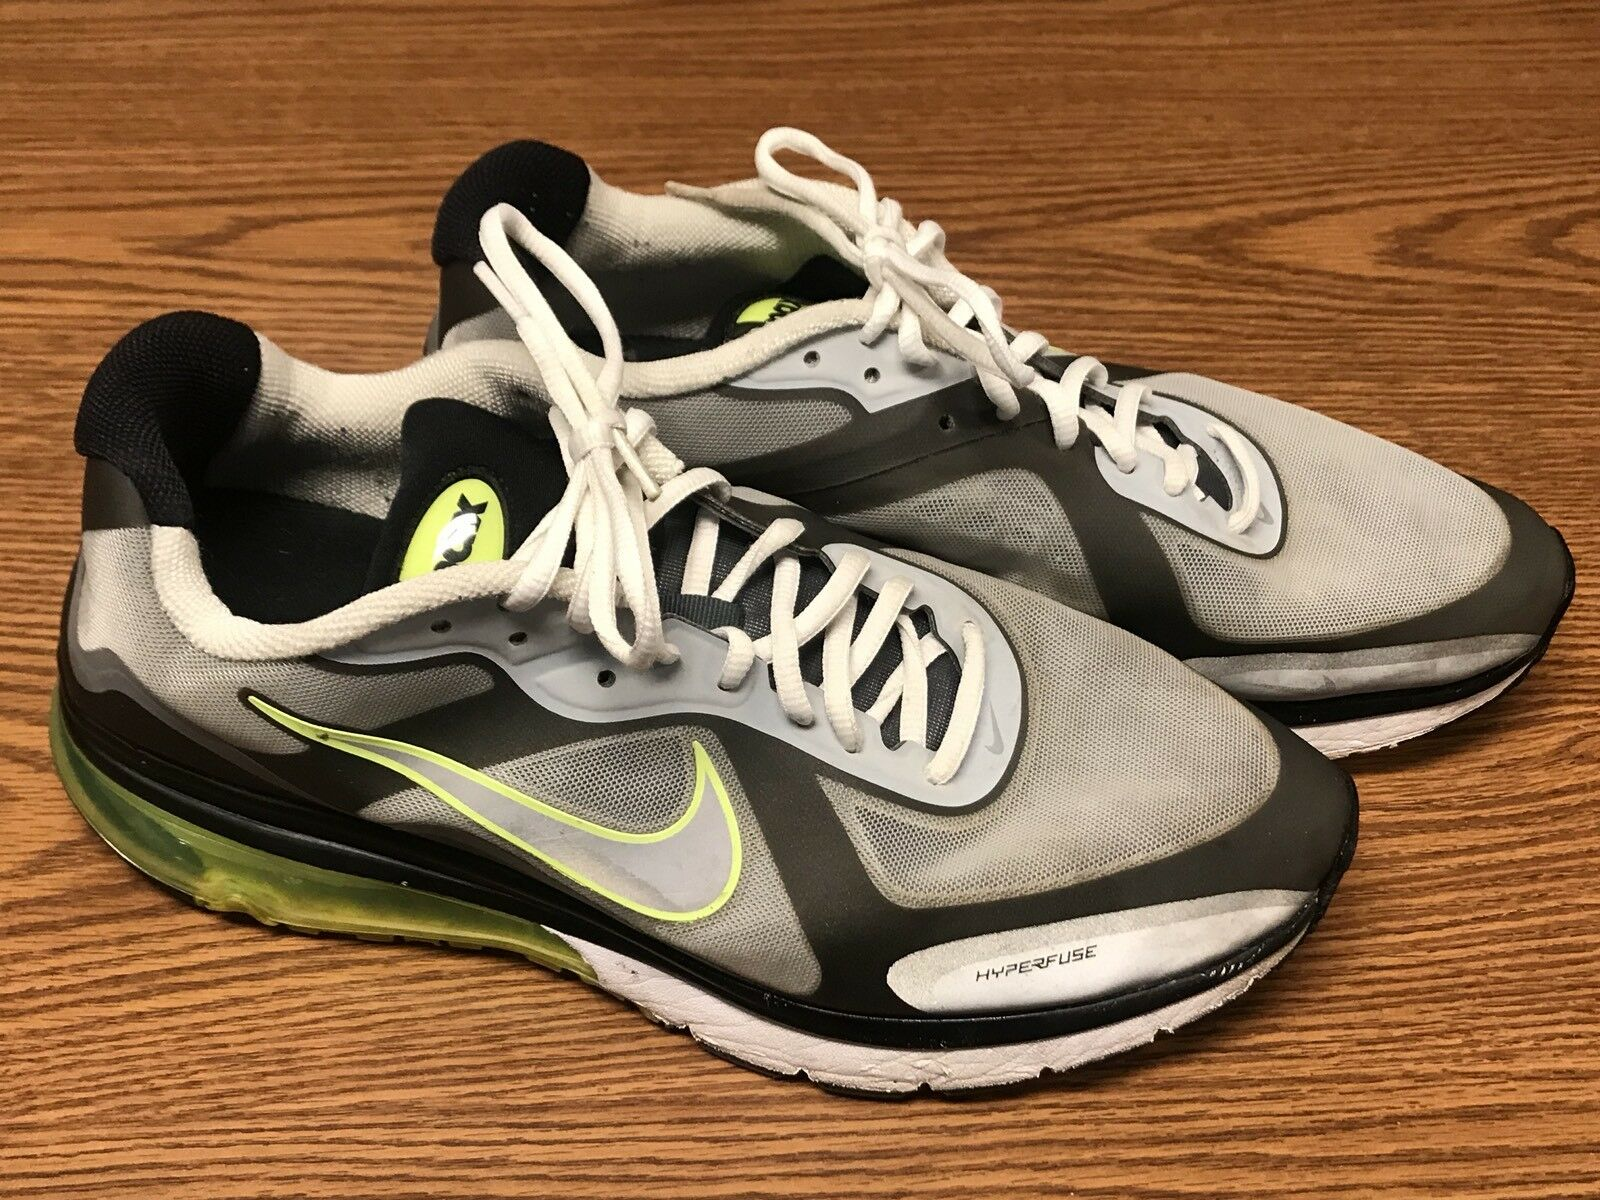 low priced e0912 969f7 get nike 454347 003 hombres air max hyperfuse negro gris 14 volt verde  zapatilla sz 14